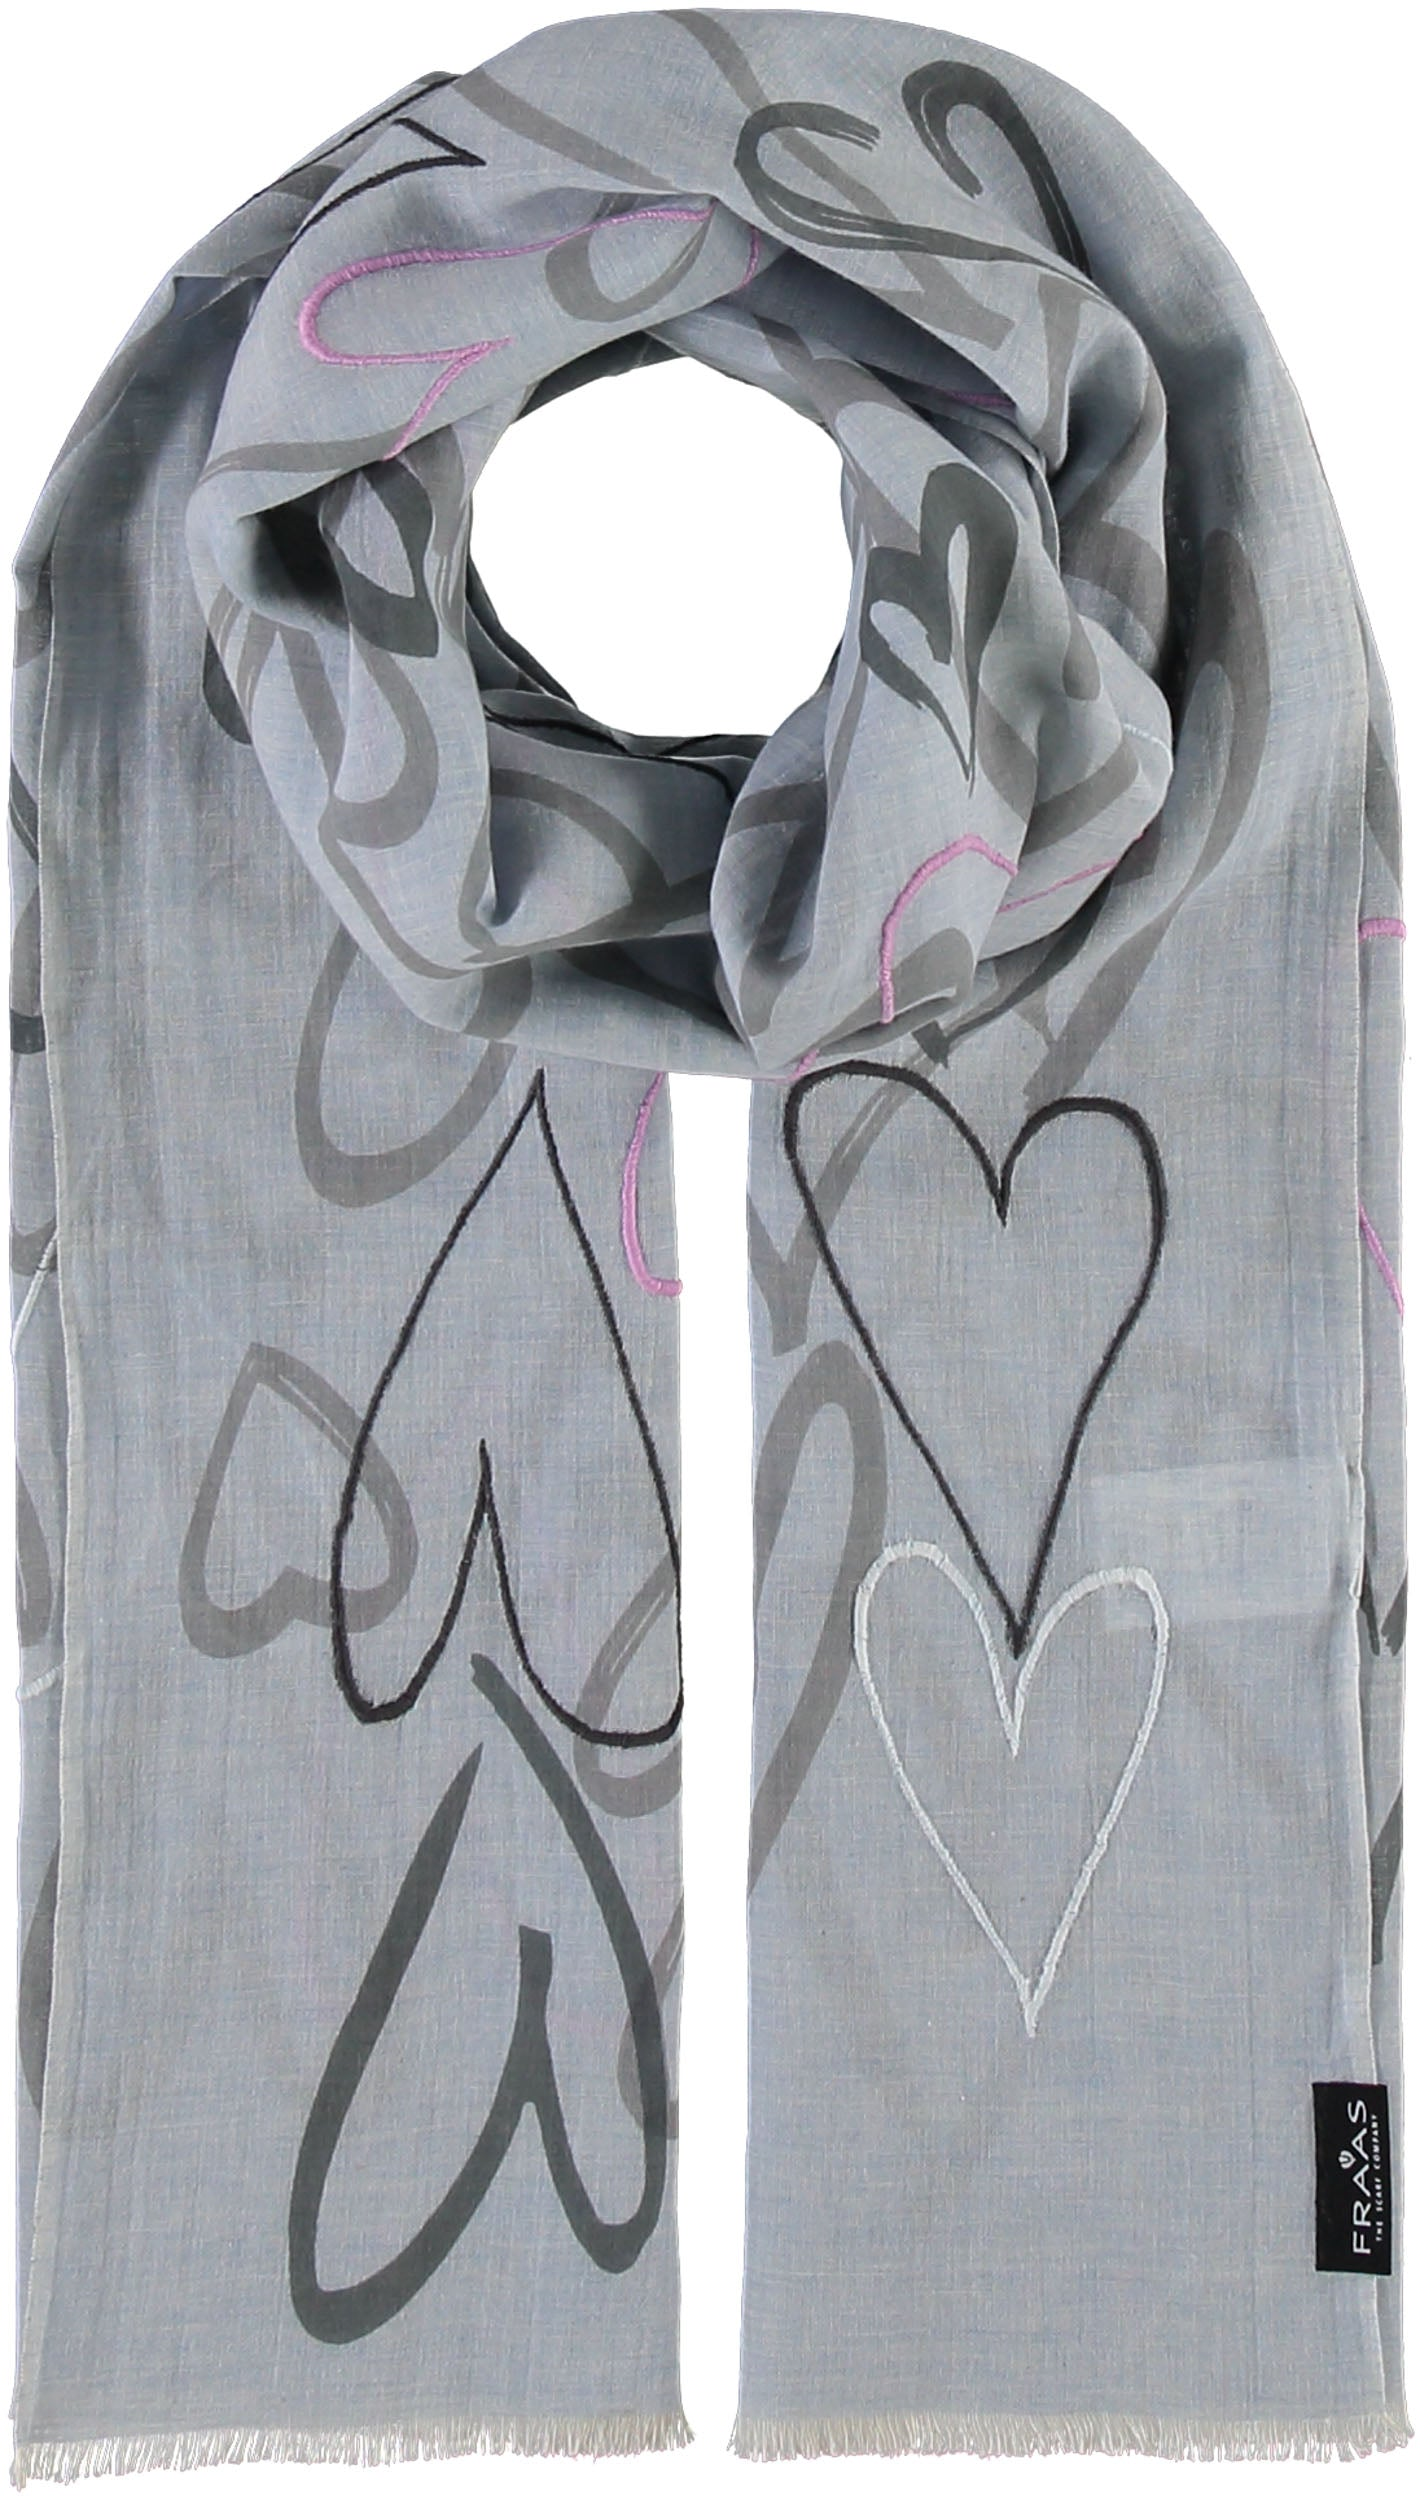 Embroidered Hearts Printed Cotton Scarf